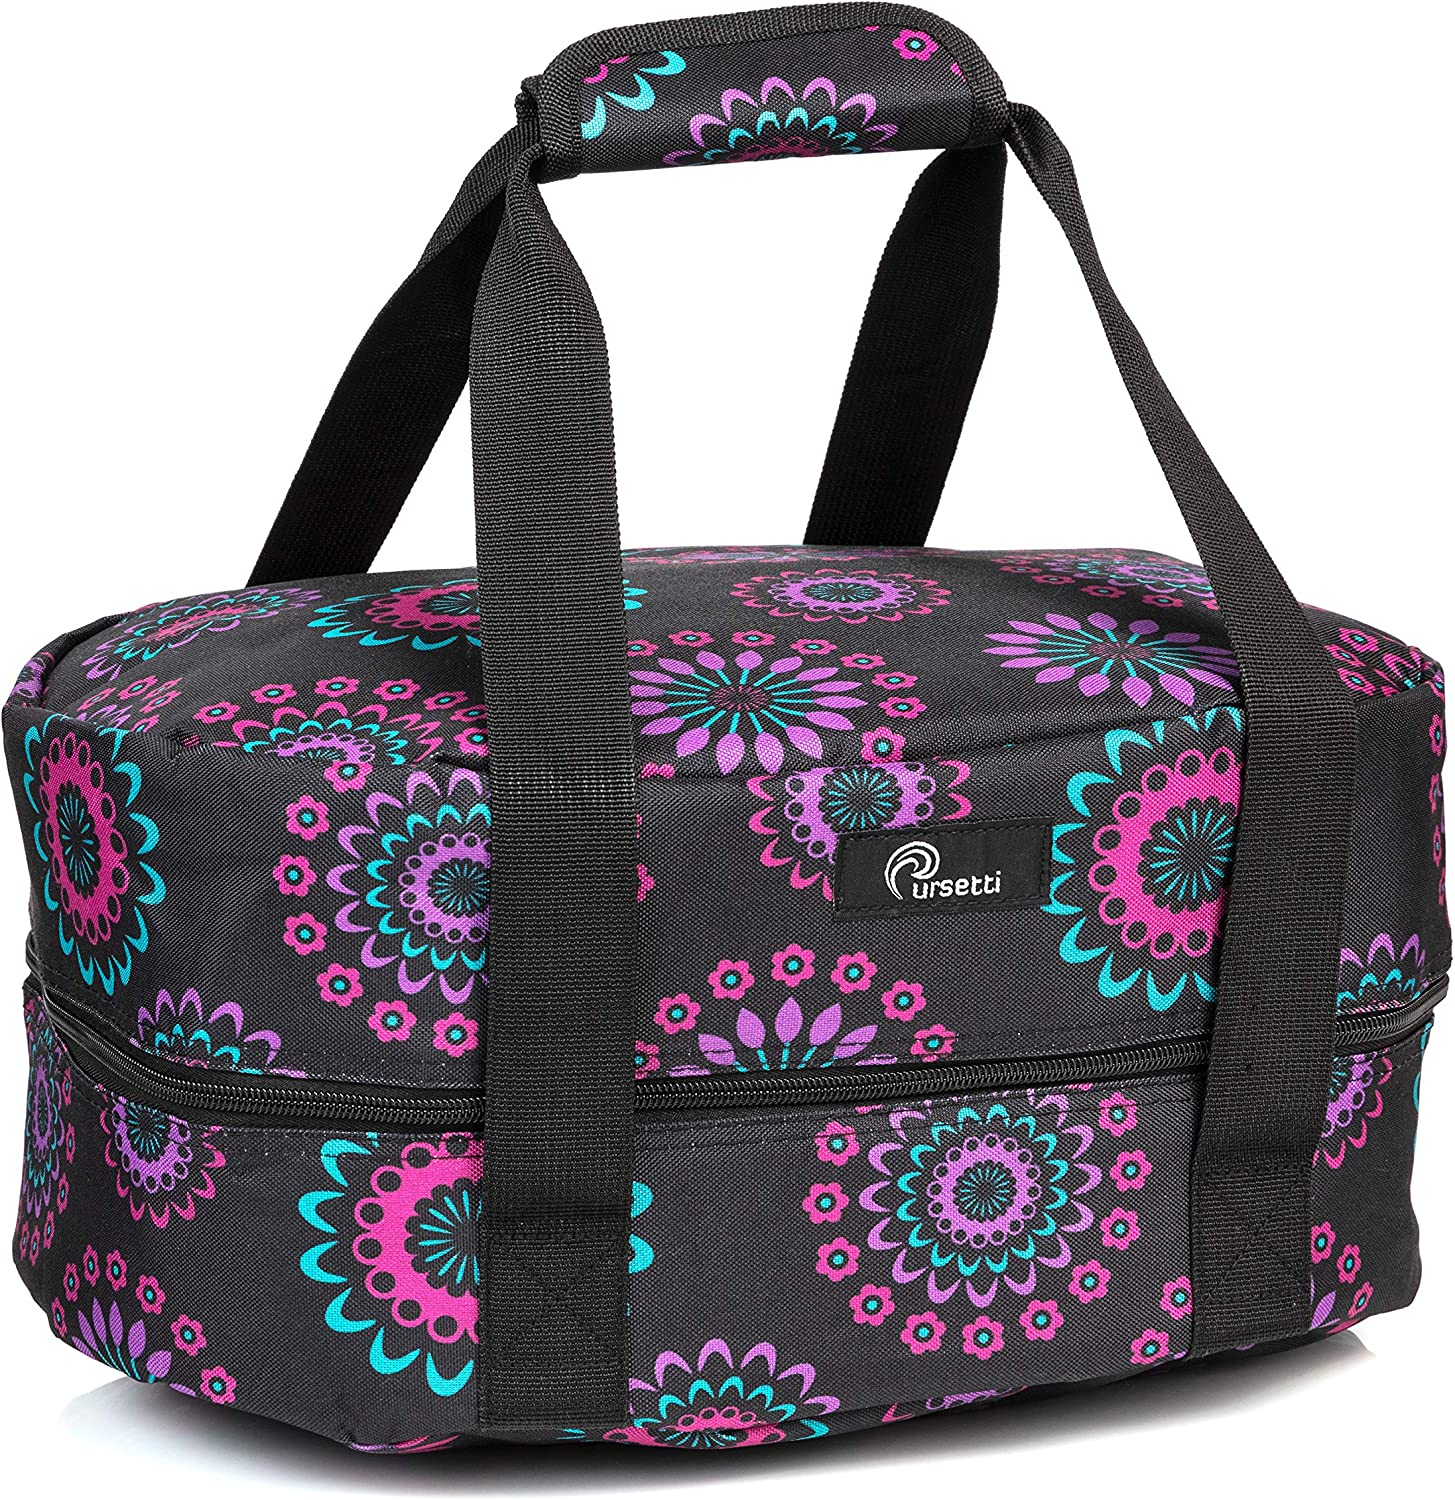 Slow Cooker Bag for Carrying Oval and Round-Shaped Crockpots, Multi Cookers, Rice & Pressure Cookers up to 6 Quarts to Transport Hot Food with Ease and in Style (Purple Circle)